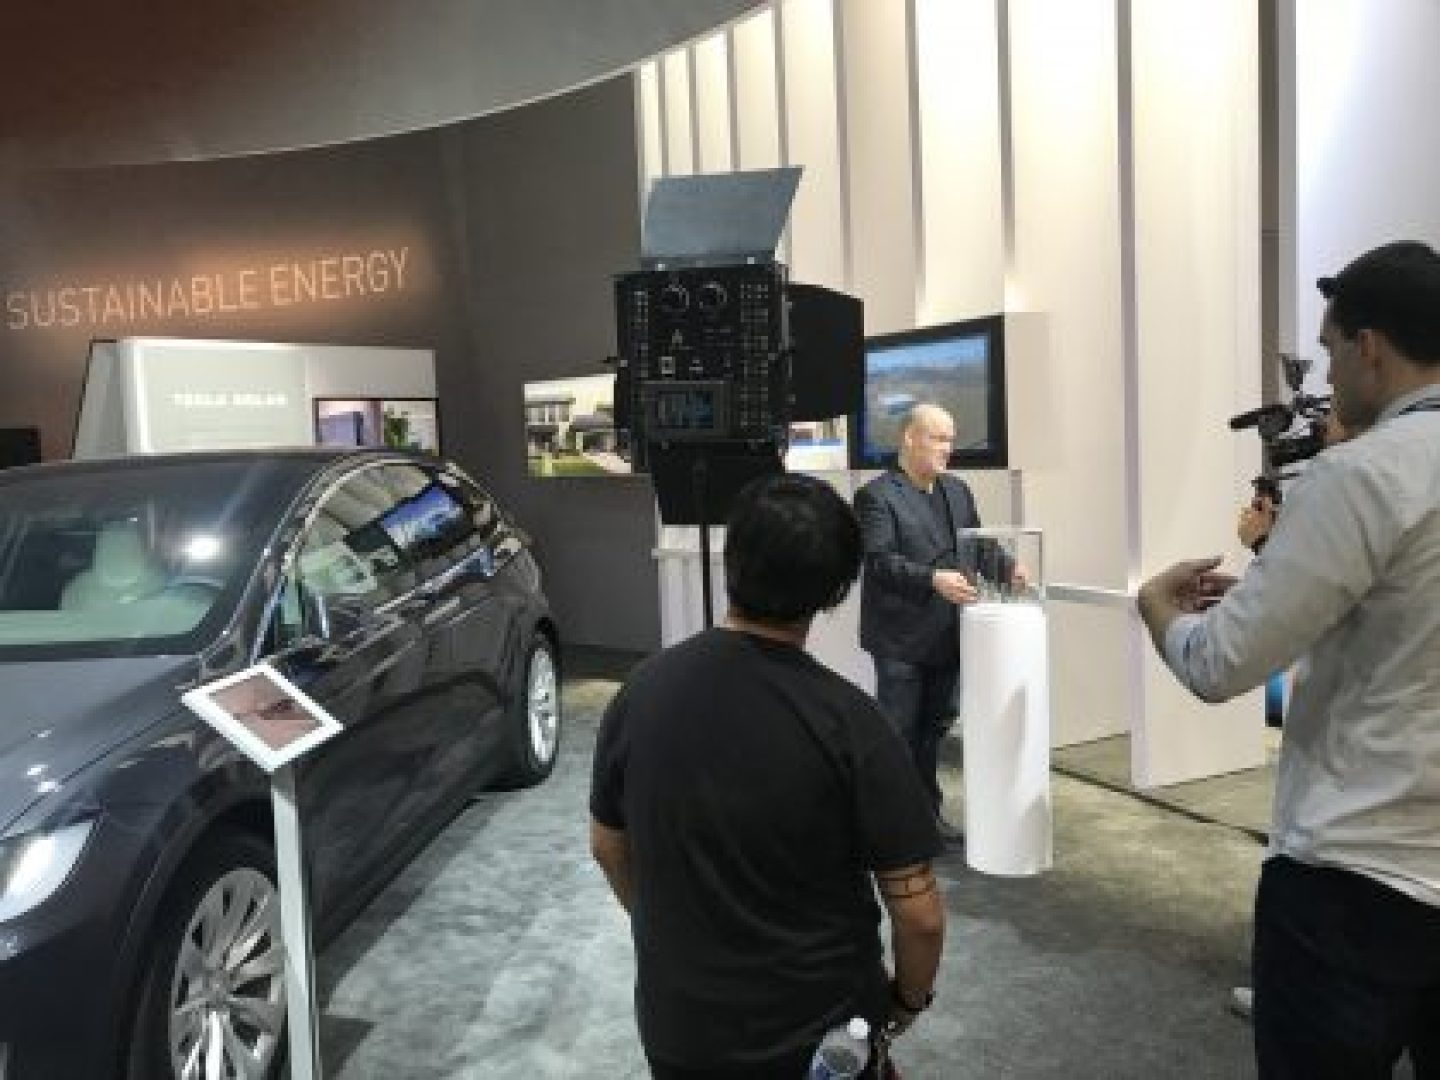 When The Green Living Guy announced the Tesla / Panasonic connection at CES 2018. It is batteries and solar. Energy storage and cars! Gigafactory 1!